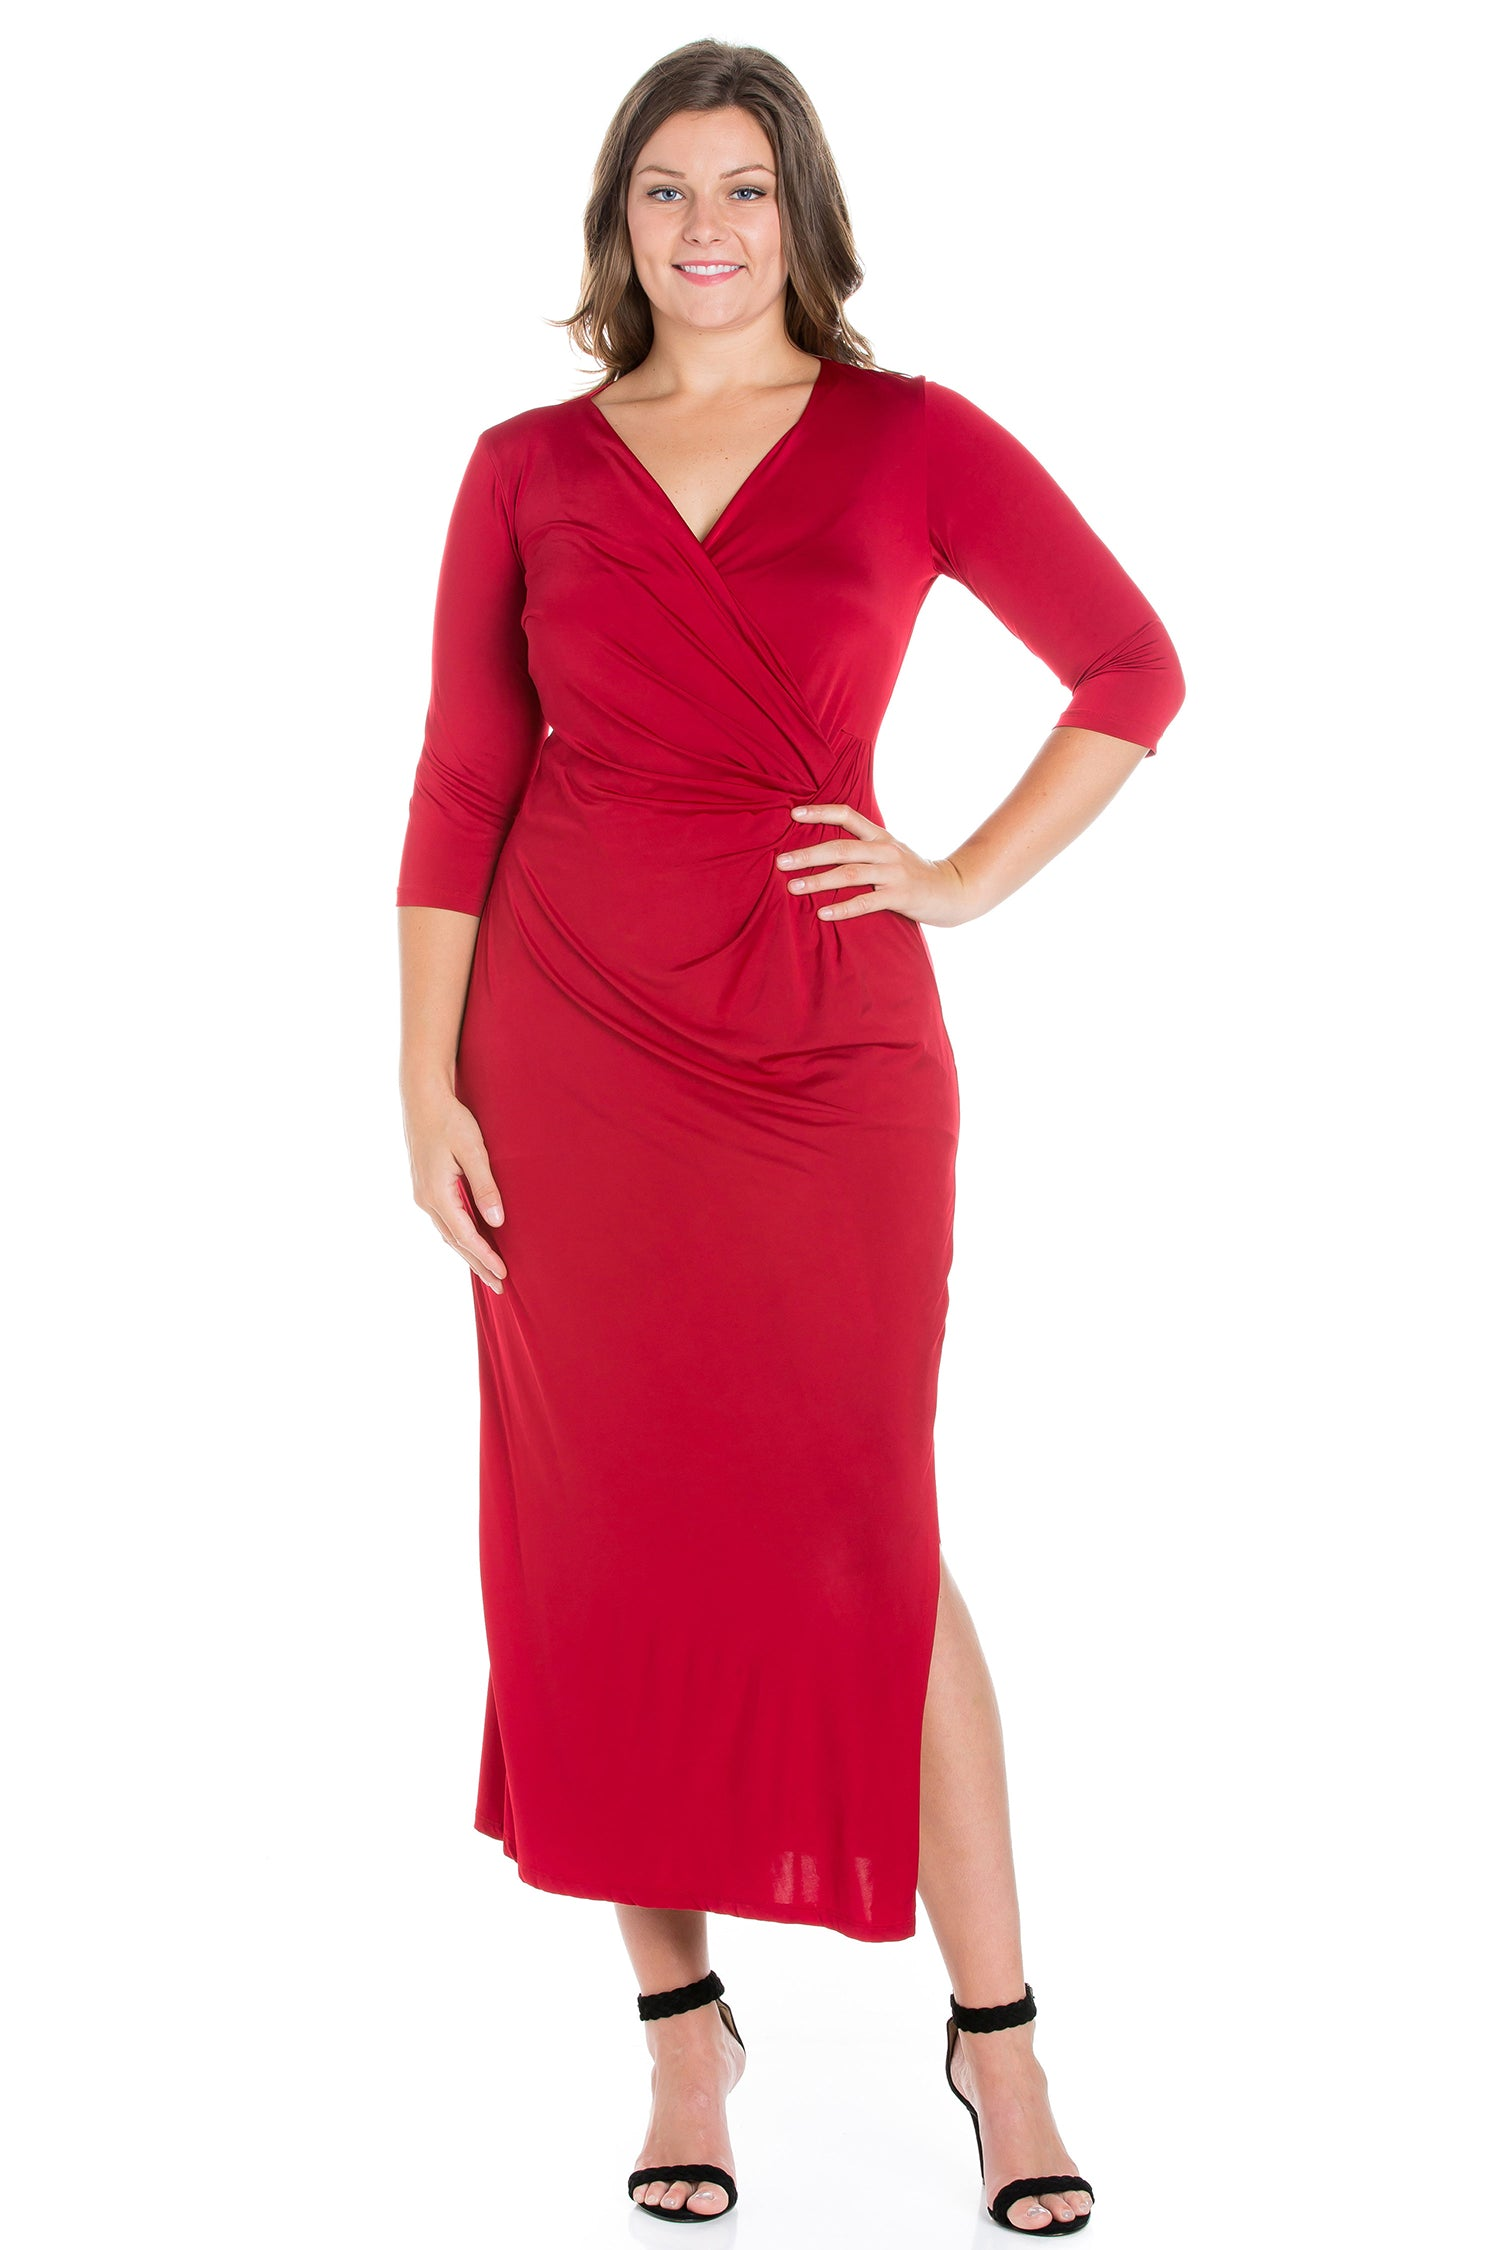 24seven Comfort Appare Fitted V-Neck Side Slit Plus Size Maxi Dress-DRESSES-24Seven Comfort Apparel-BURGUNDY-1X-24/7 Comfort Apparel